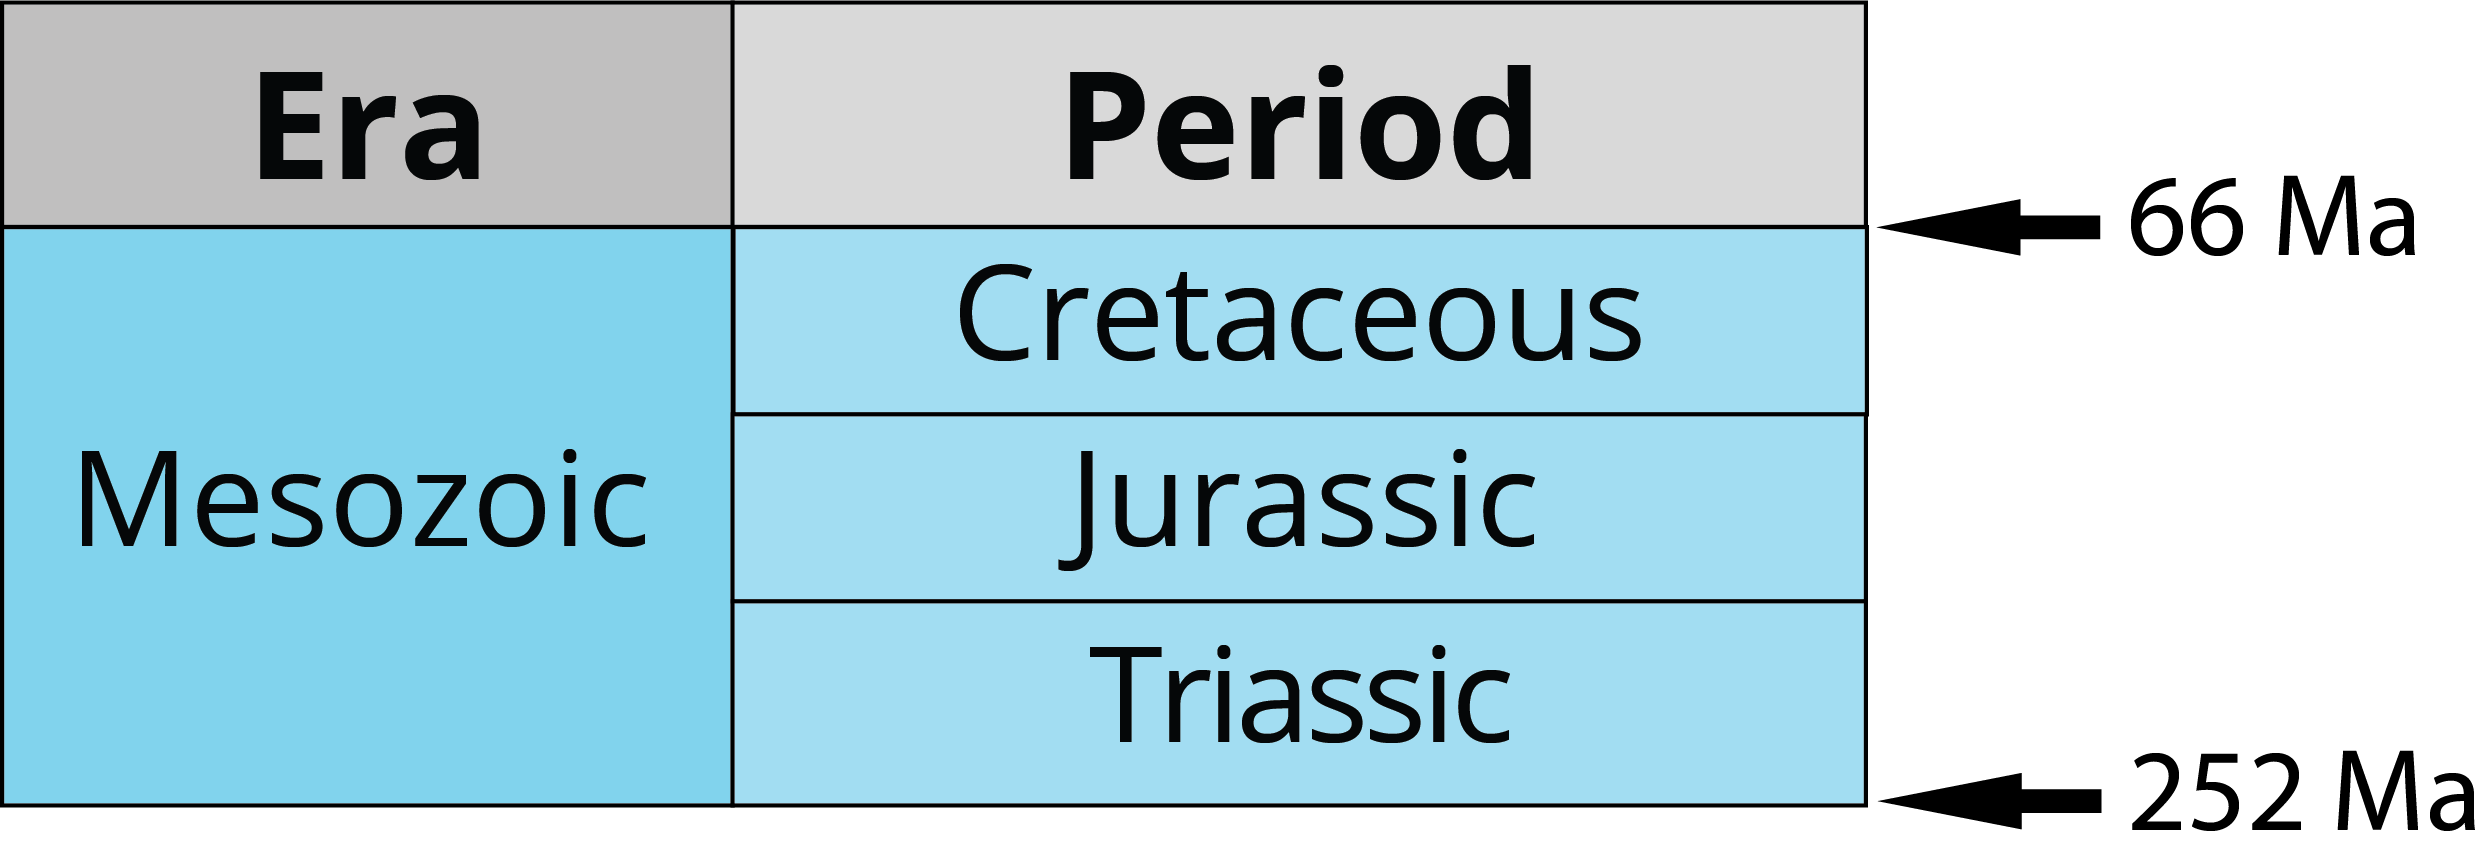 Periods of the Mesozoic era: Triassic, Jurassic, Cretaceous